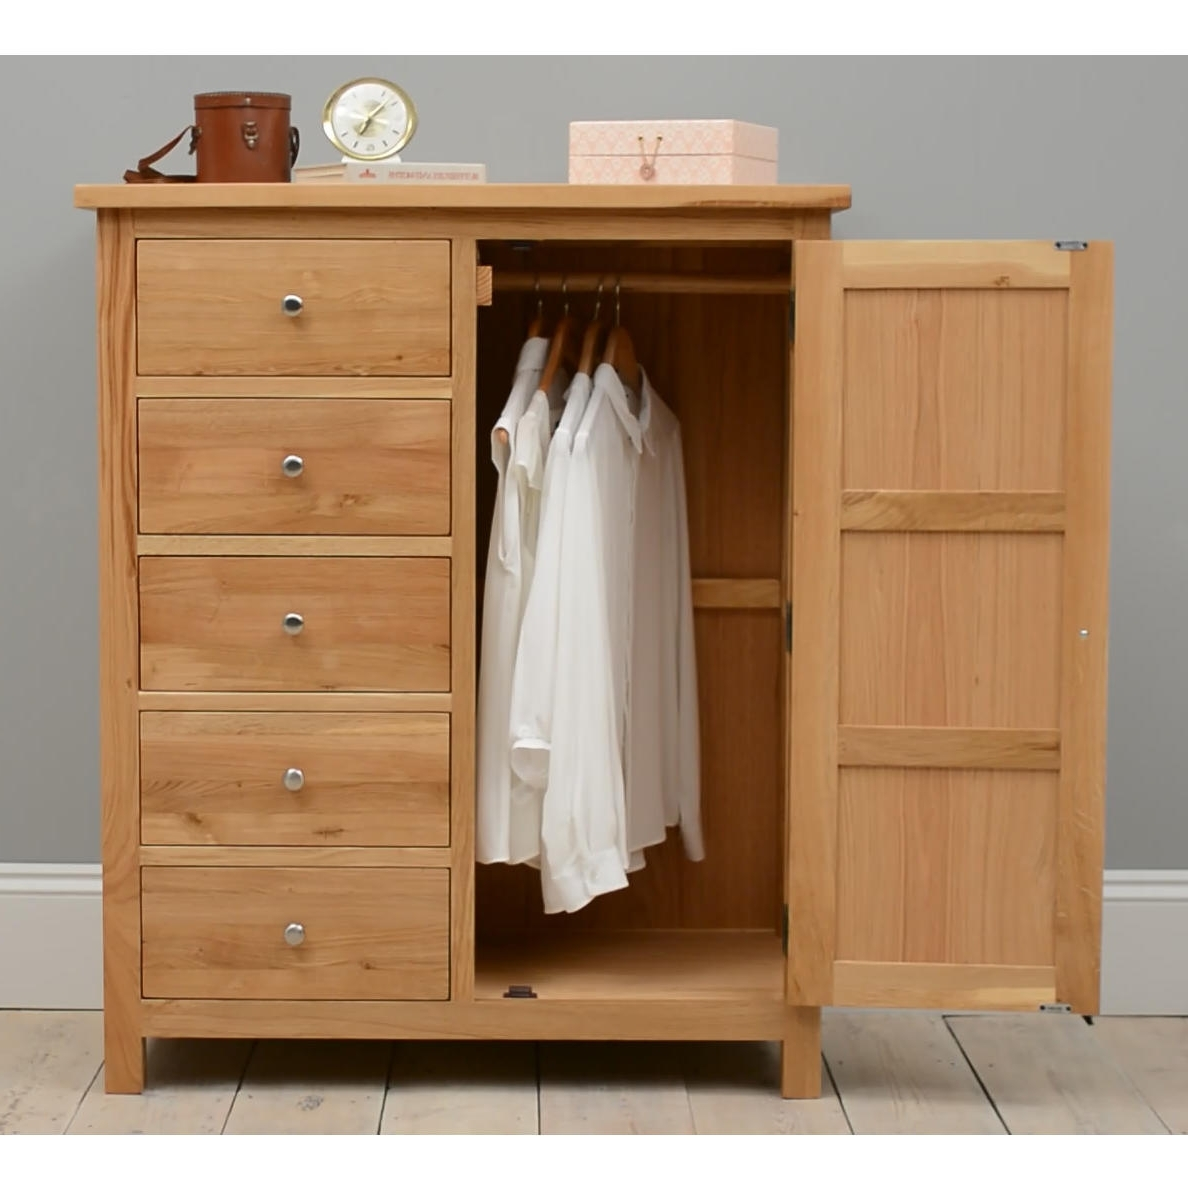 Chest Of Drawers Wardrobes Combination Throughout Popular Buy Oak, Pine, Painted & Modern Wardrobes At Furniture Octopus (View 5 of 15)